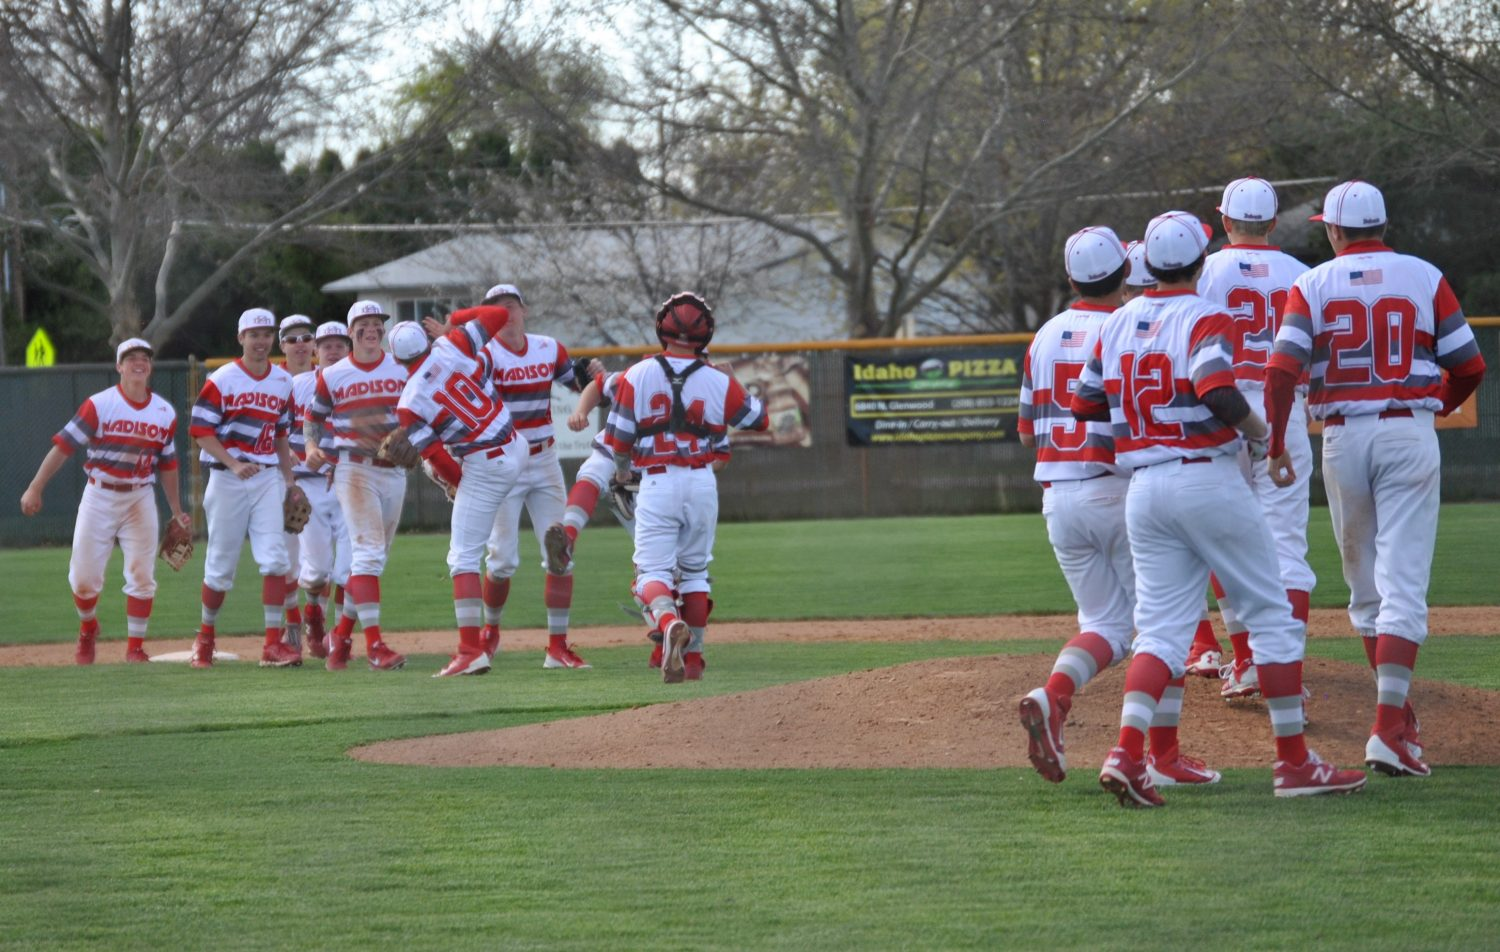 Madison%E2%80%99s+varsity+team+celebrating+in+style+after+Matt+Bolingbroke+threw+a+complete+game+against+Capital+in+Boise.+Courtesy+photo%3A+Ginger+Crawford%0A